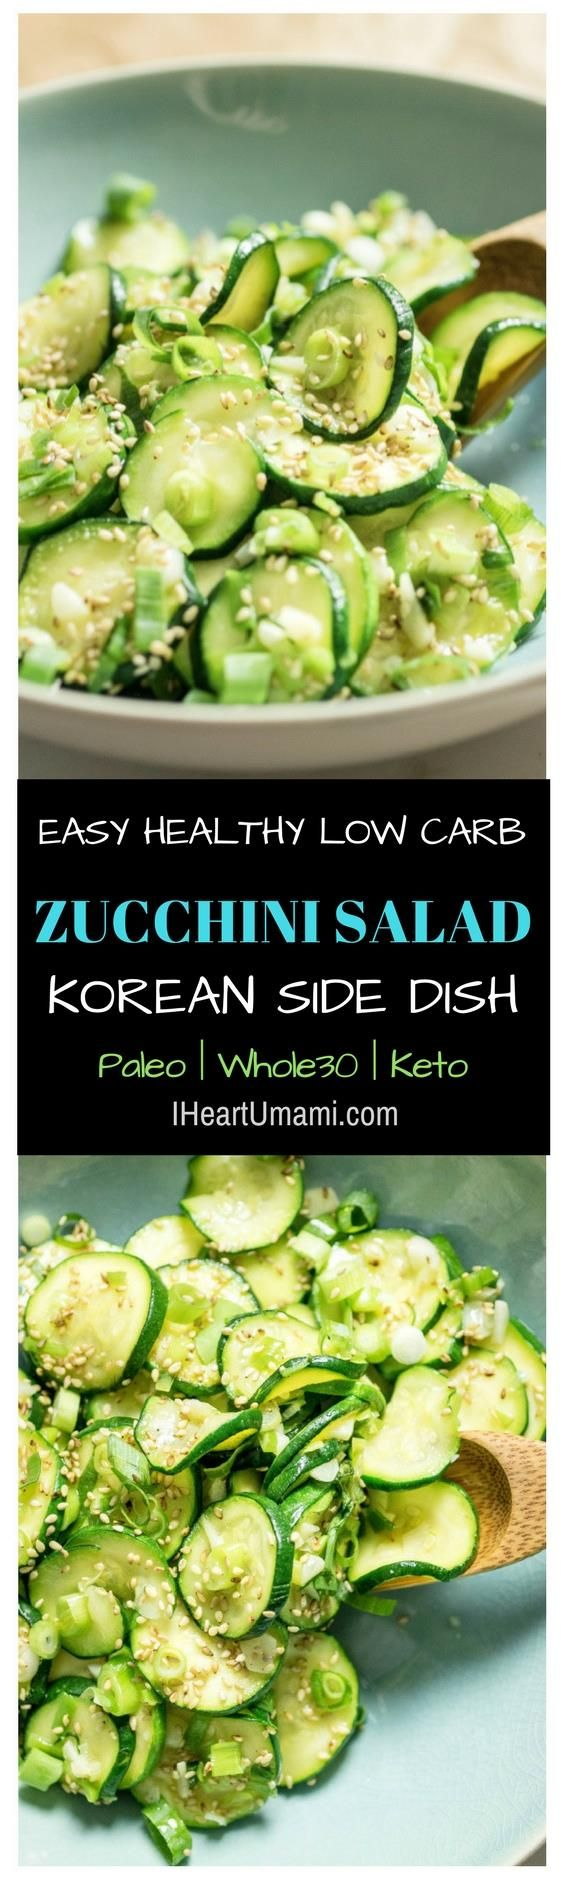 Easy healthy Kokrean Chilled Zucchini Sides. Super delicious, low carb, and Paleo Whole30 Keto friendly side dish. It tastes better even the day after. Don't miss this healthy and super yummy zucchini side dish ! #zucchinis #healthy #easy #sidedish #simple #lowcarb #Whole30 via @iheartumami